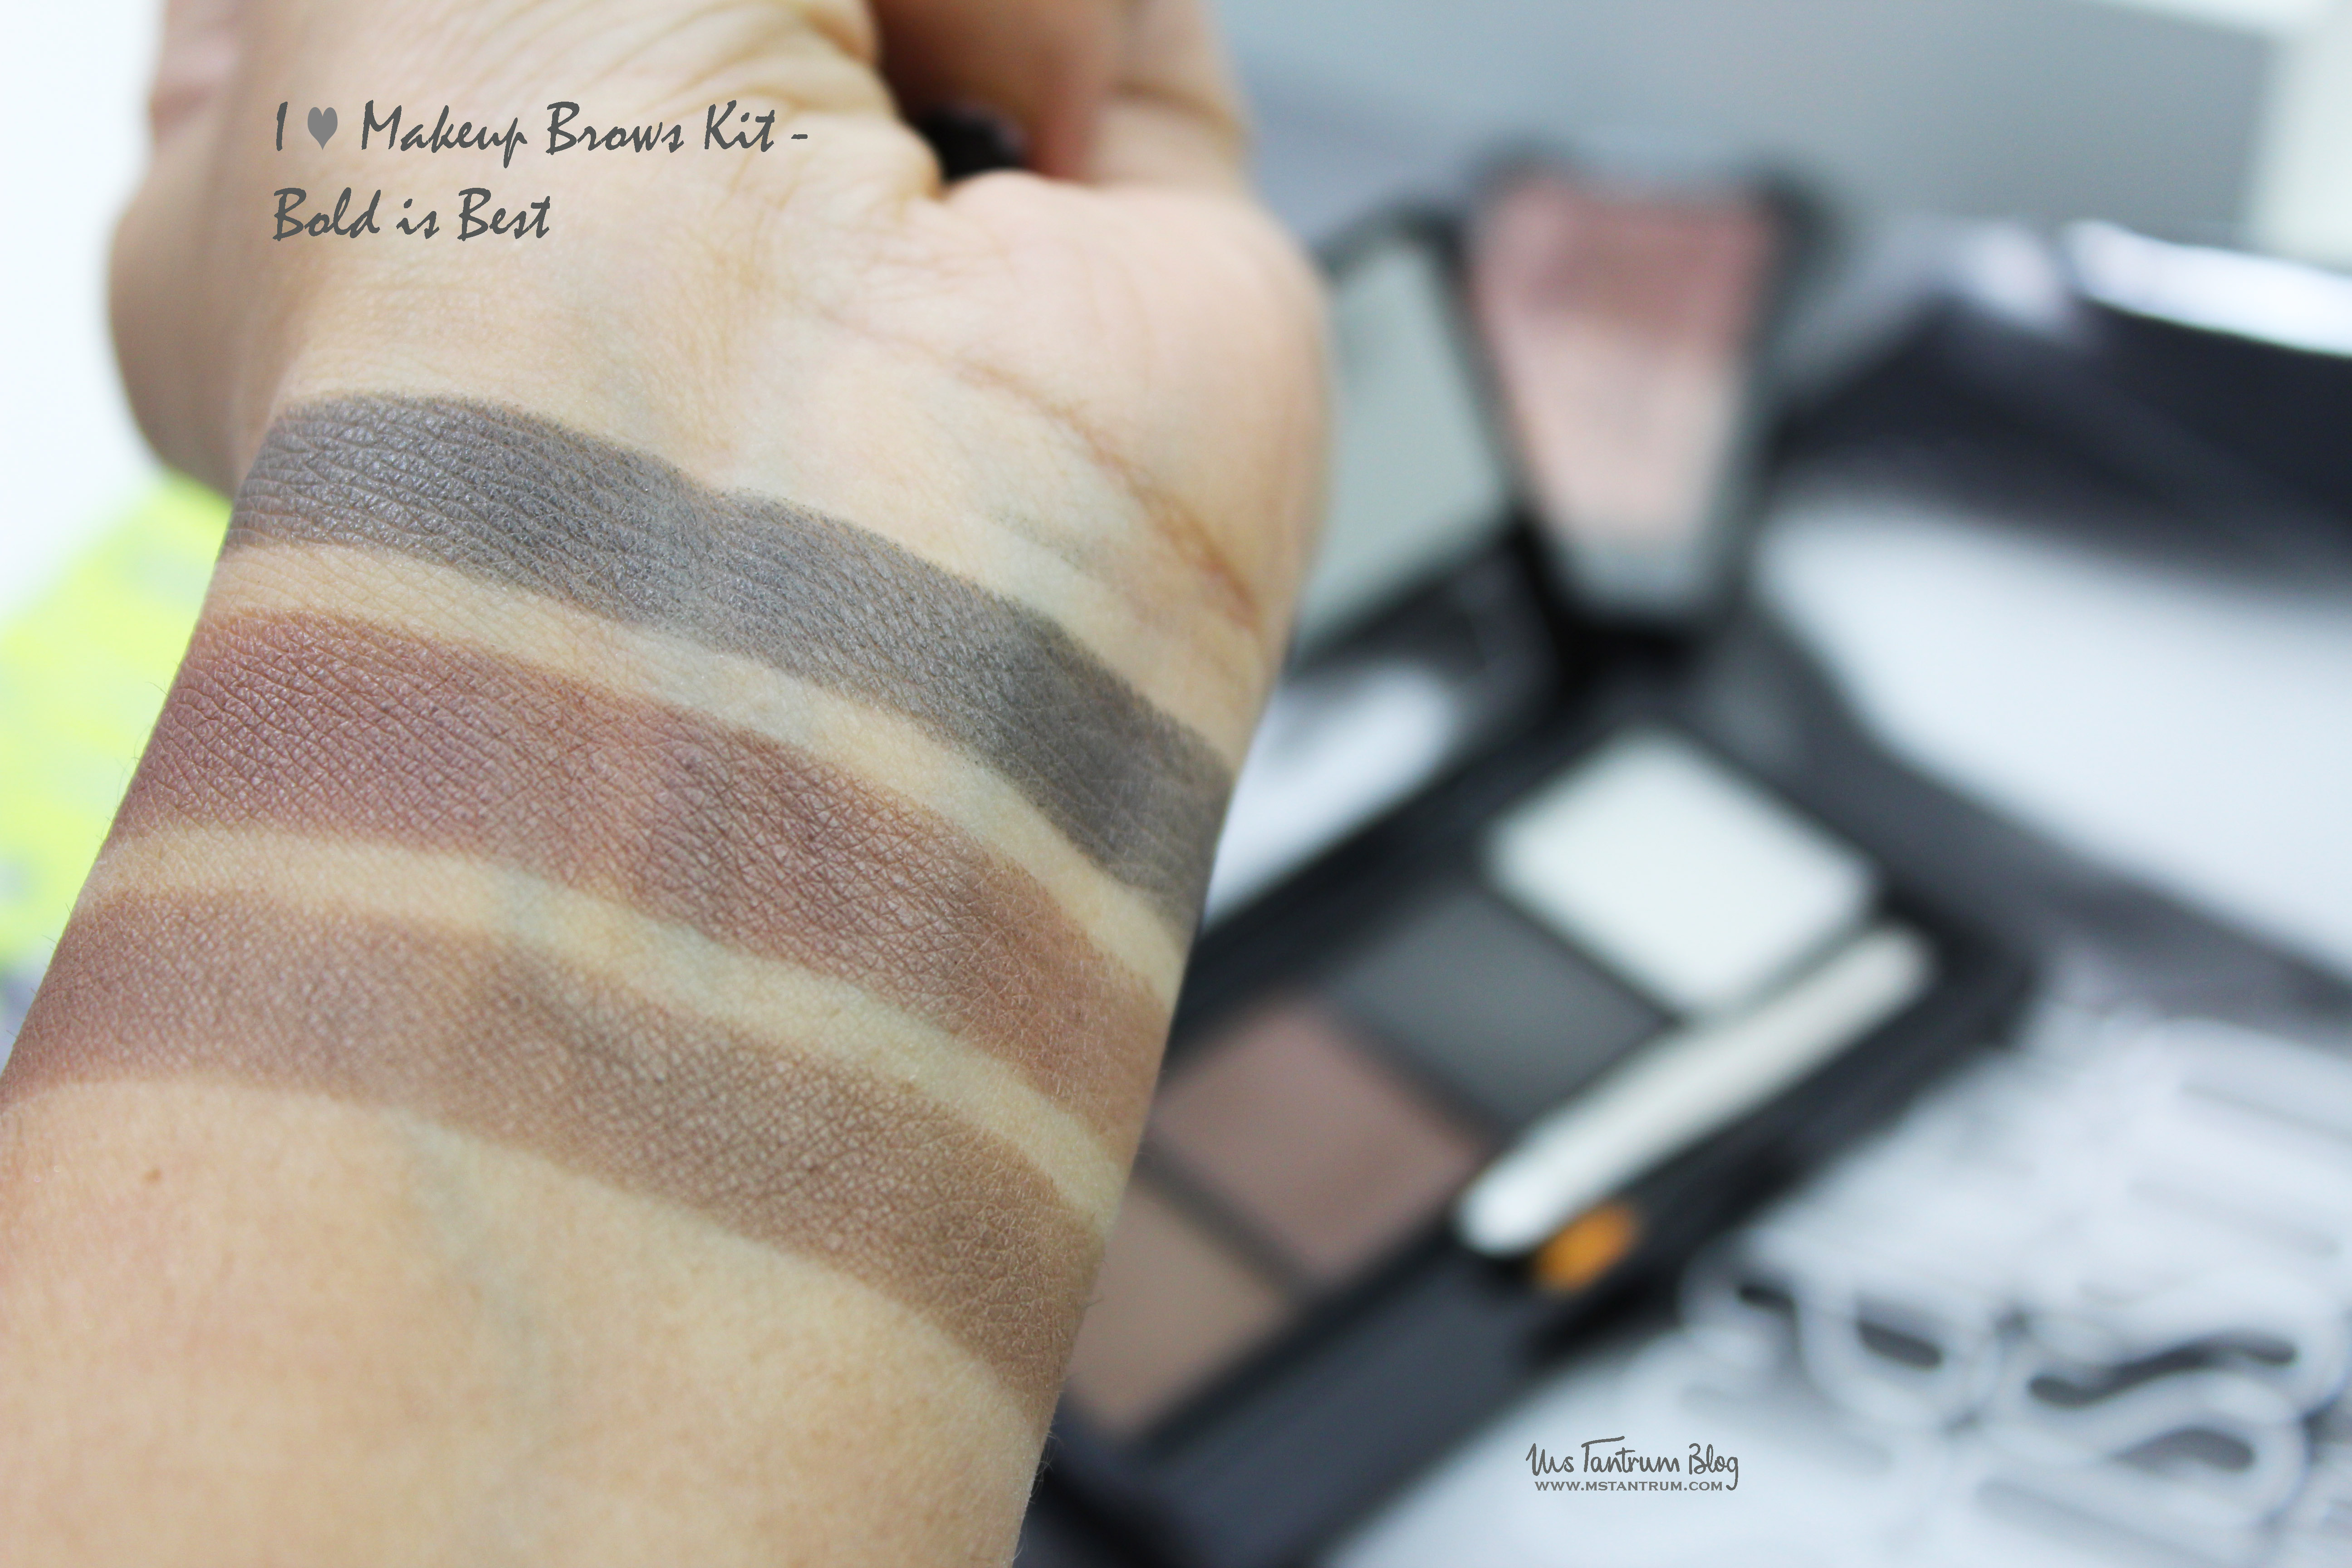 I <3 Makeup Brow Kit - Bold is Best